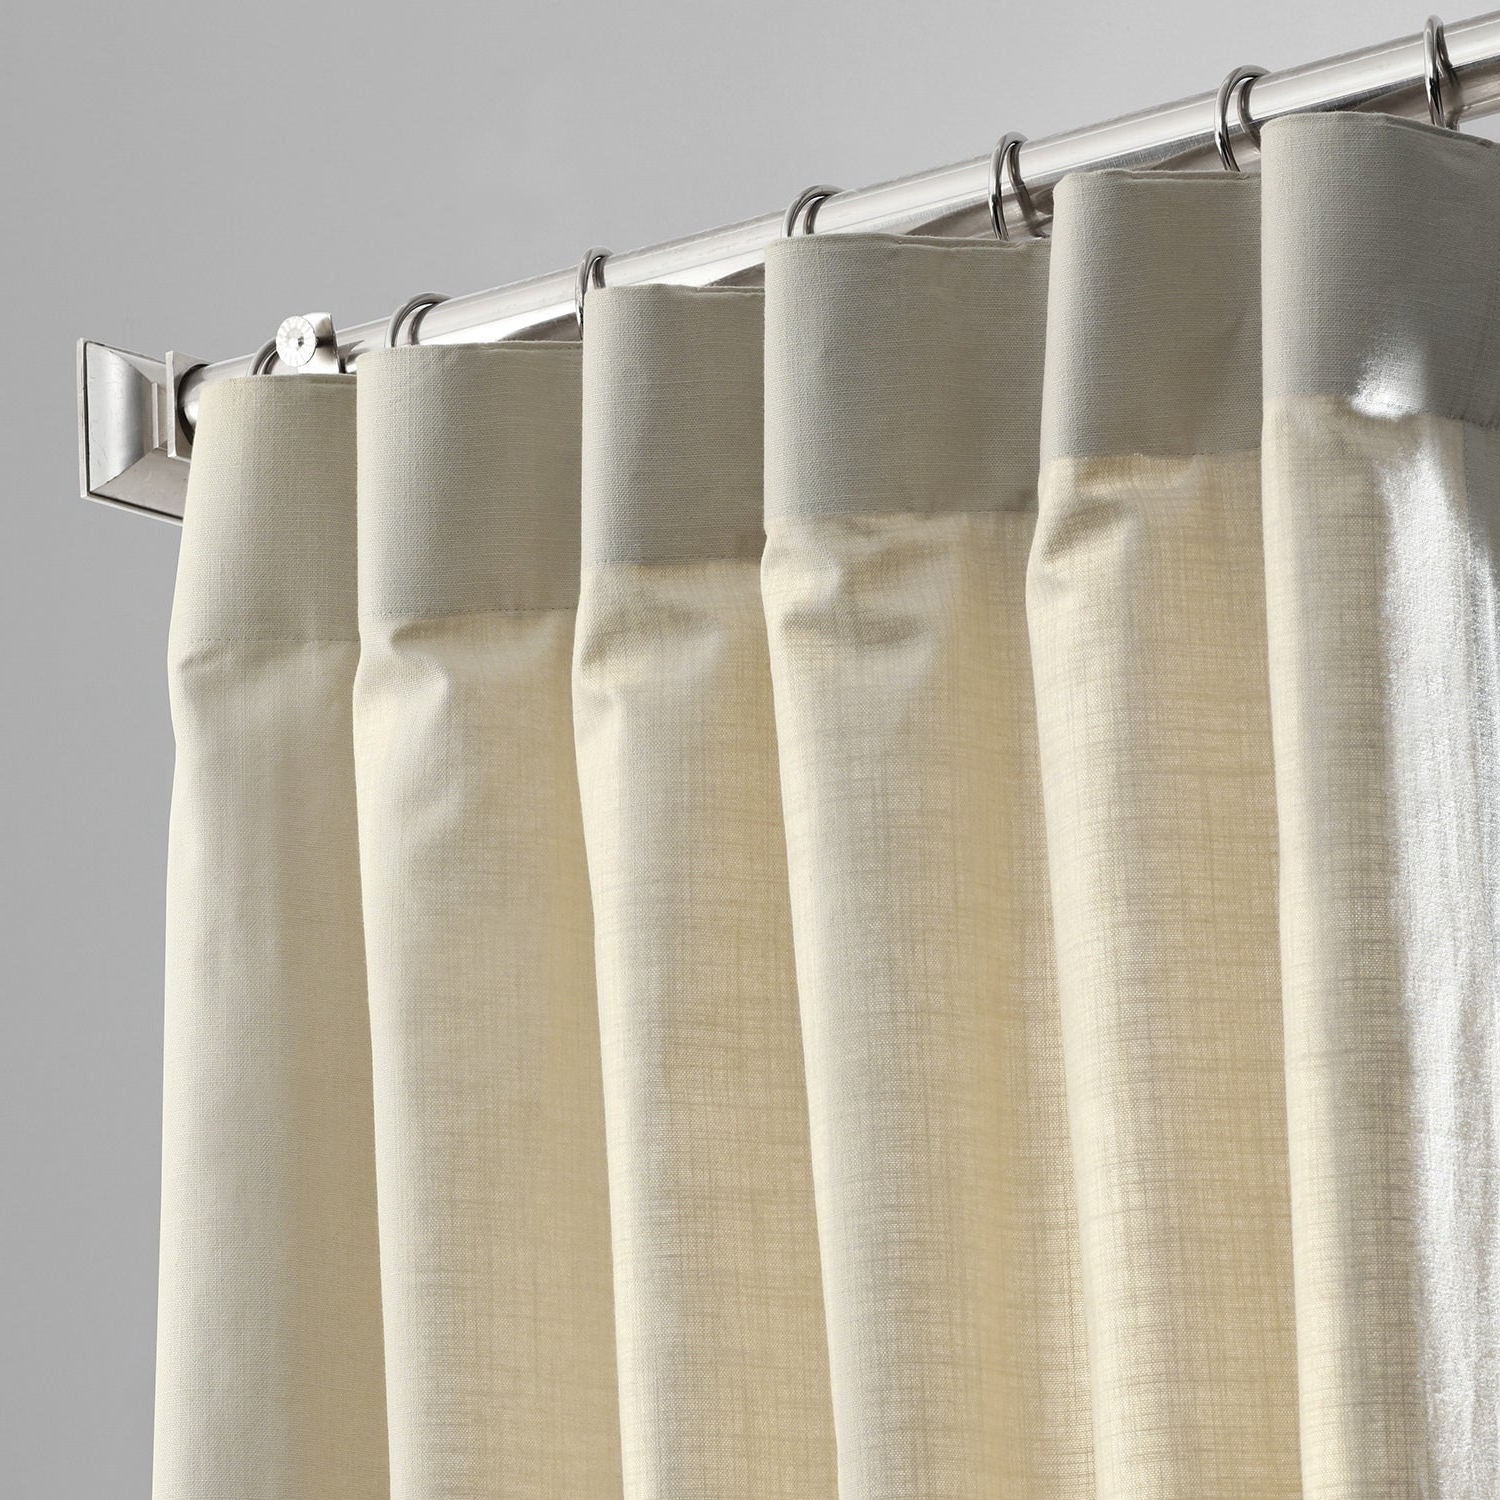 Solid Country Cotton Linen Weave Curtain Panels Inside Popular Exclusive Fabrics Solid Country Cotton Linen Weave Curtain Panel (View 16 of 20)